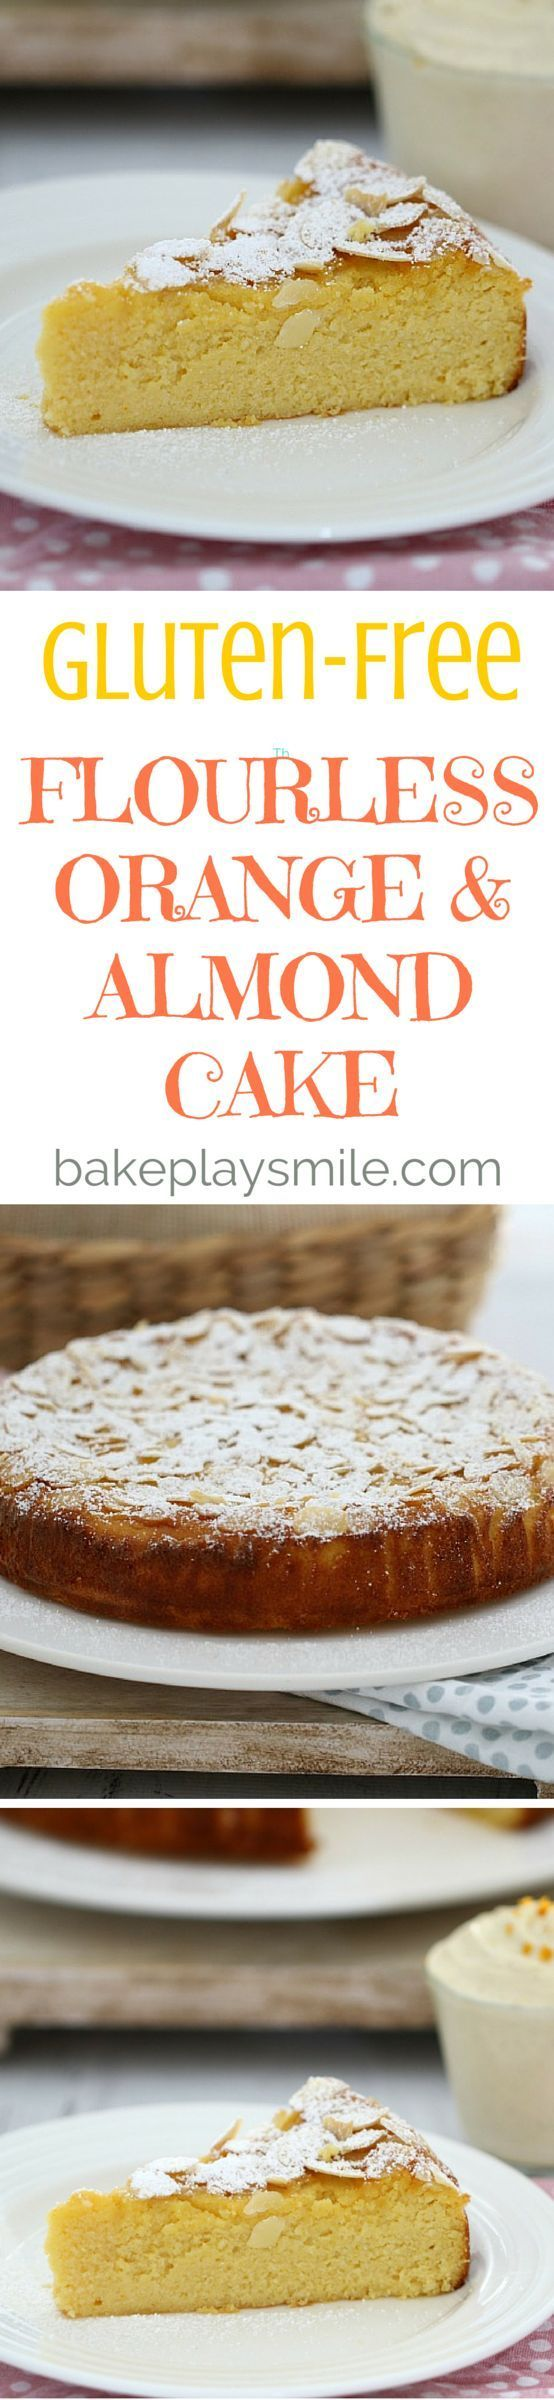 Perfectly moist and delicious, this Gluten-Free Flourless Orange and Almond Cake ticks all the boxes. Serve with vanilla bean infused double cream for an indulgent treat. #glutenfree #flourless #orange #almond #cake #easy #baking #recipe #conventional #th